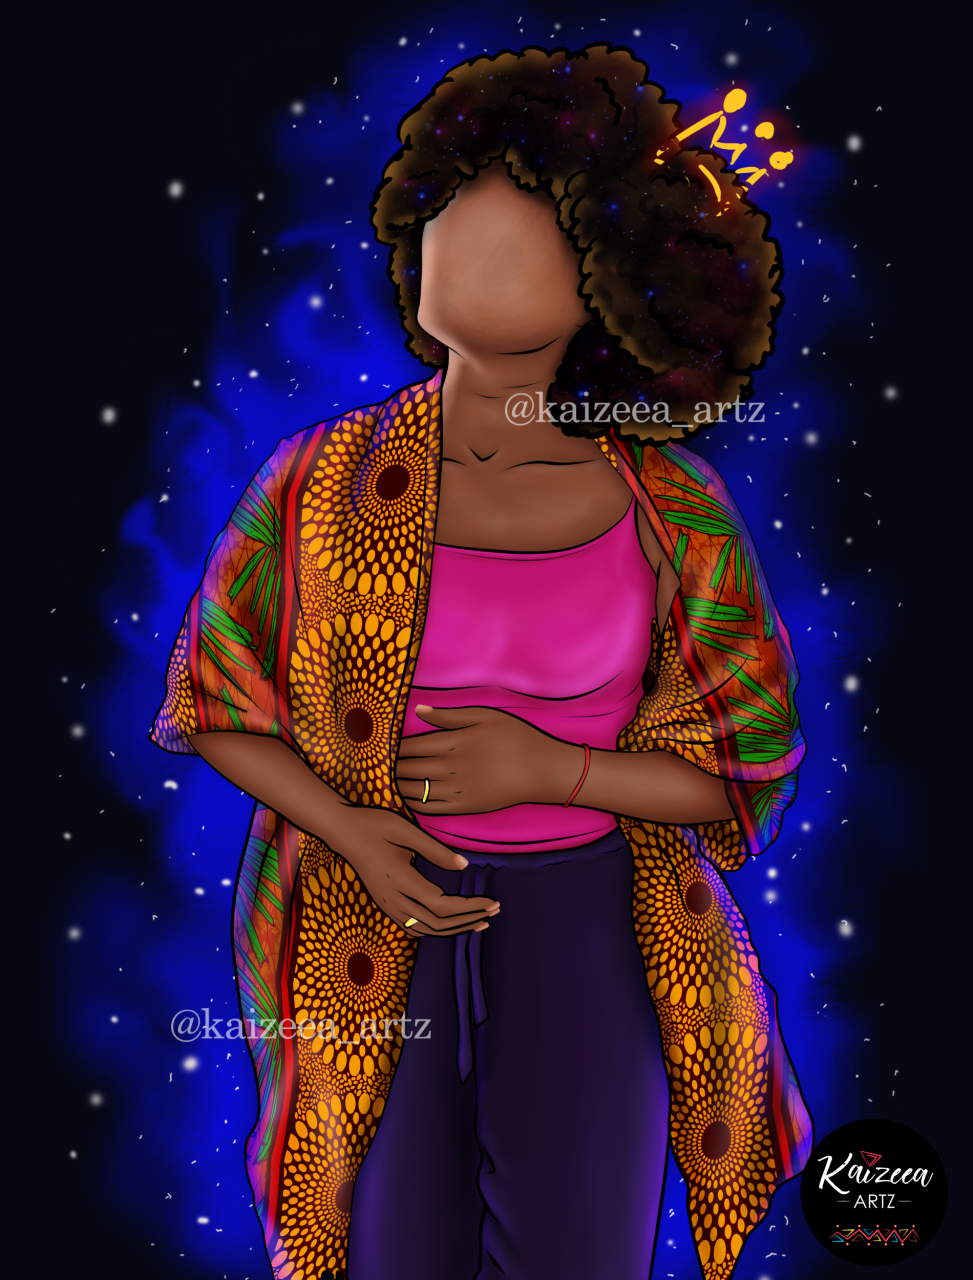 Black girl magic kimono fashion african wax pagne pagne africain motifs wax impression wax france guadeloupe afrique maurice tropicale fuschia rose pink pants baggy hippie lueur univers mystique mistic universe magic magique afro girl puff afro puff cheveux tignasse chevelure tree arbre racine etoiles poussiere stars blue best artist digital art Kaizeea artz kaizeea art artist artiste mauricienne mauritius digital art digital artist art numerique lart art ile black art best black artist best black art top best black artist top african art black girl magic black woman african art drawing black is beautiful blackqueen melanin afroart afriart art life painter artist artist on instagram dope black art headwrap rasta alien spiritual locs locs style woman with locs dreadlocks locs locsé tribal make up maquillage afrique